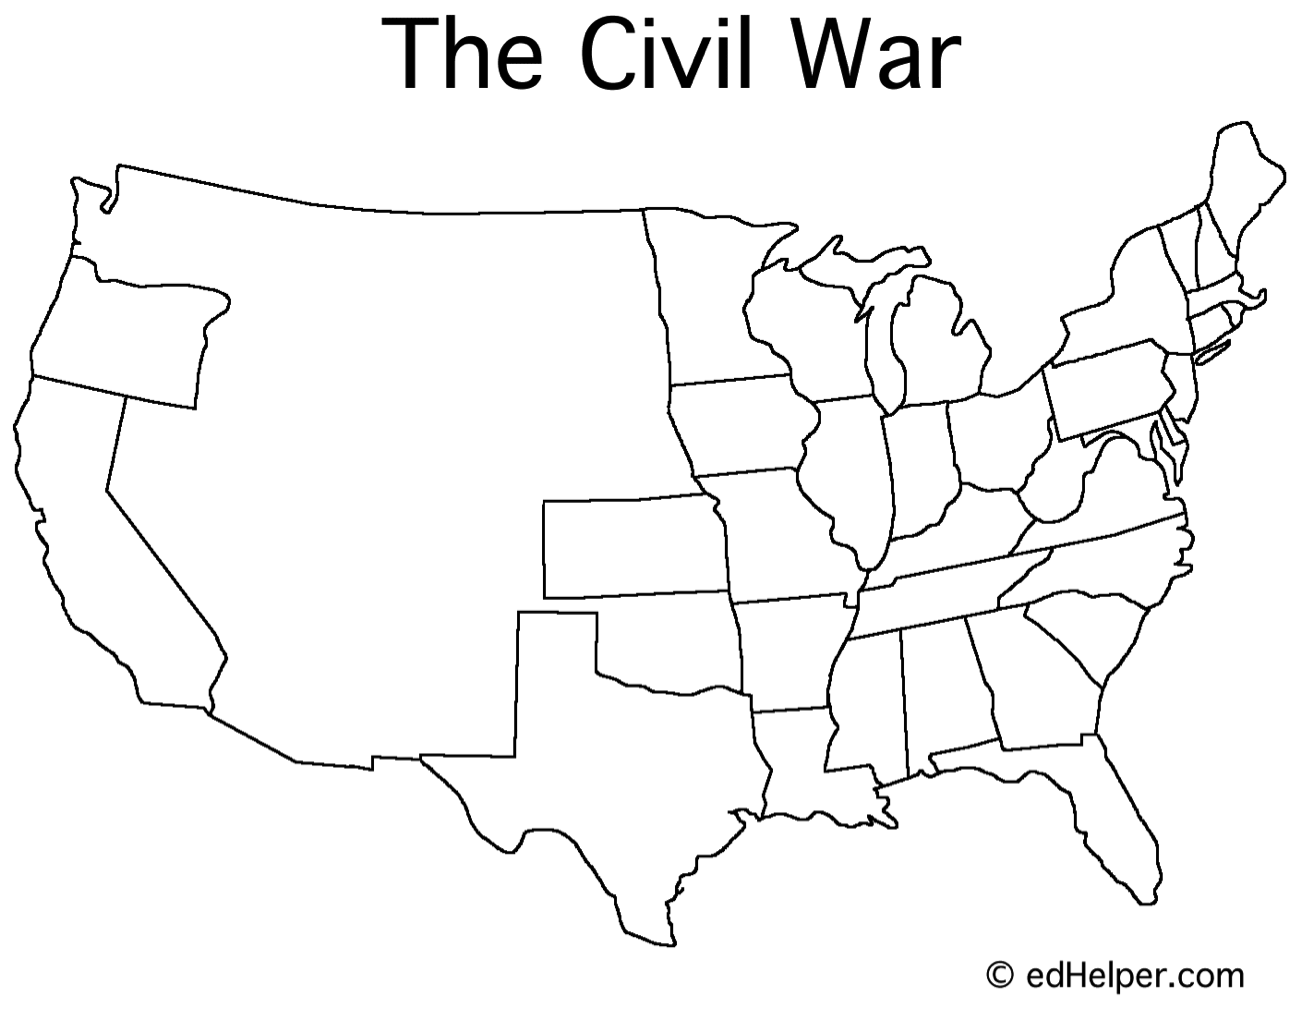 civil war timeline google search social studies